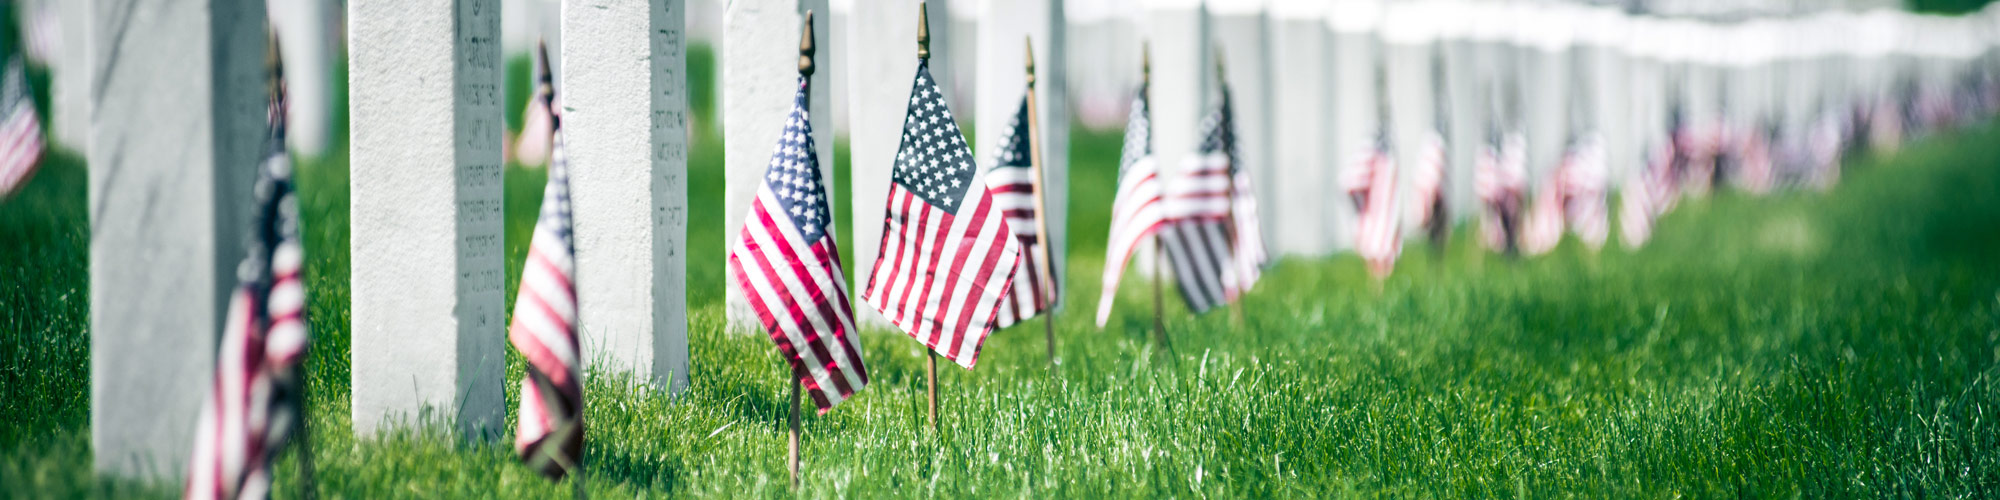 Memorial Day Banner - Series of military grave markers with american flags in the ground before them.